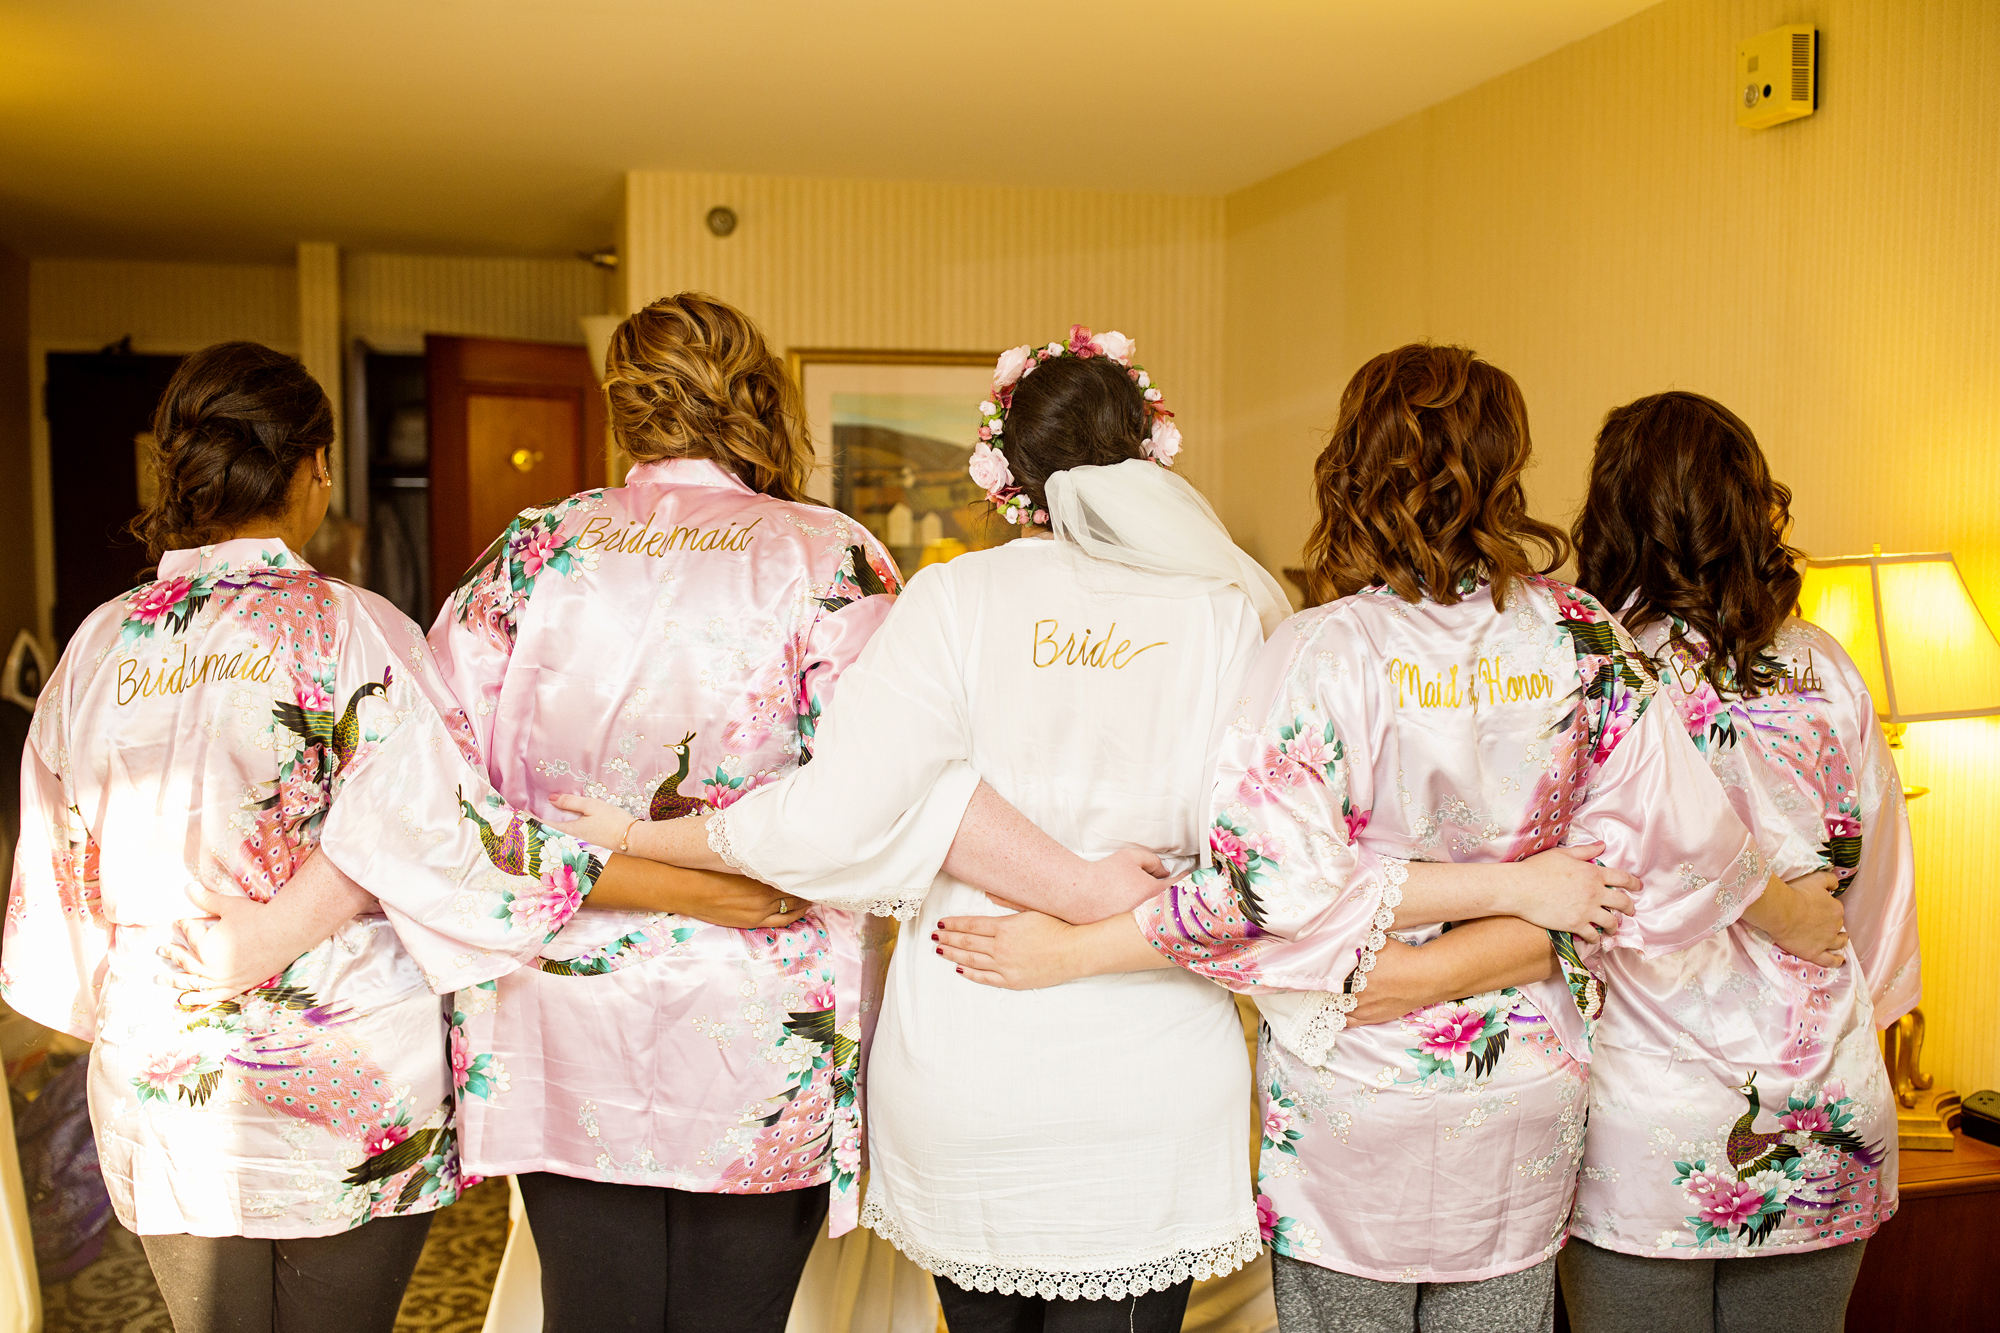 Seriously_Sabrina_Photography_Lisle_Illinois_Morton_Arboretum_Wedding_Day_Gowen18.jpg